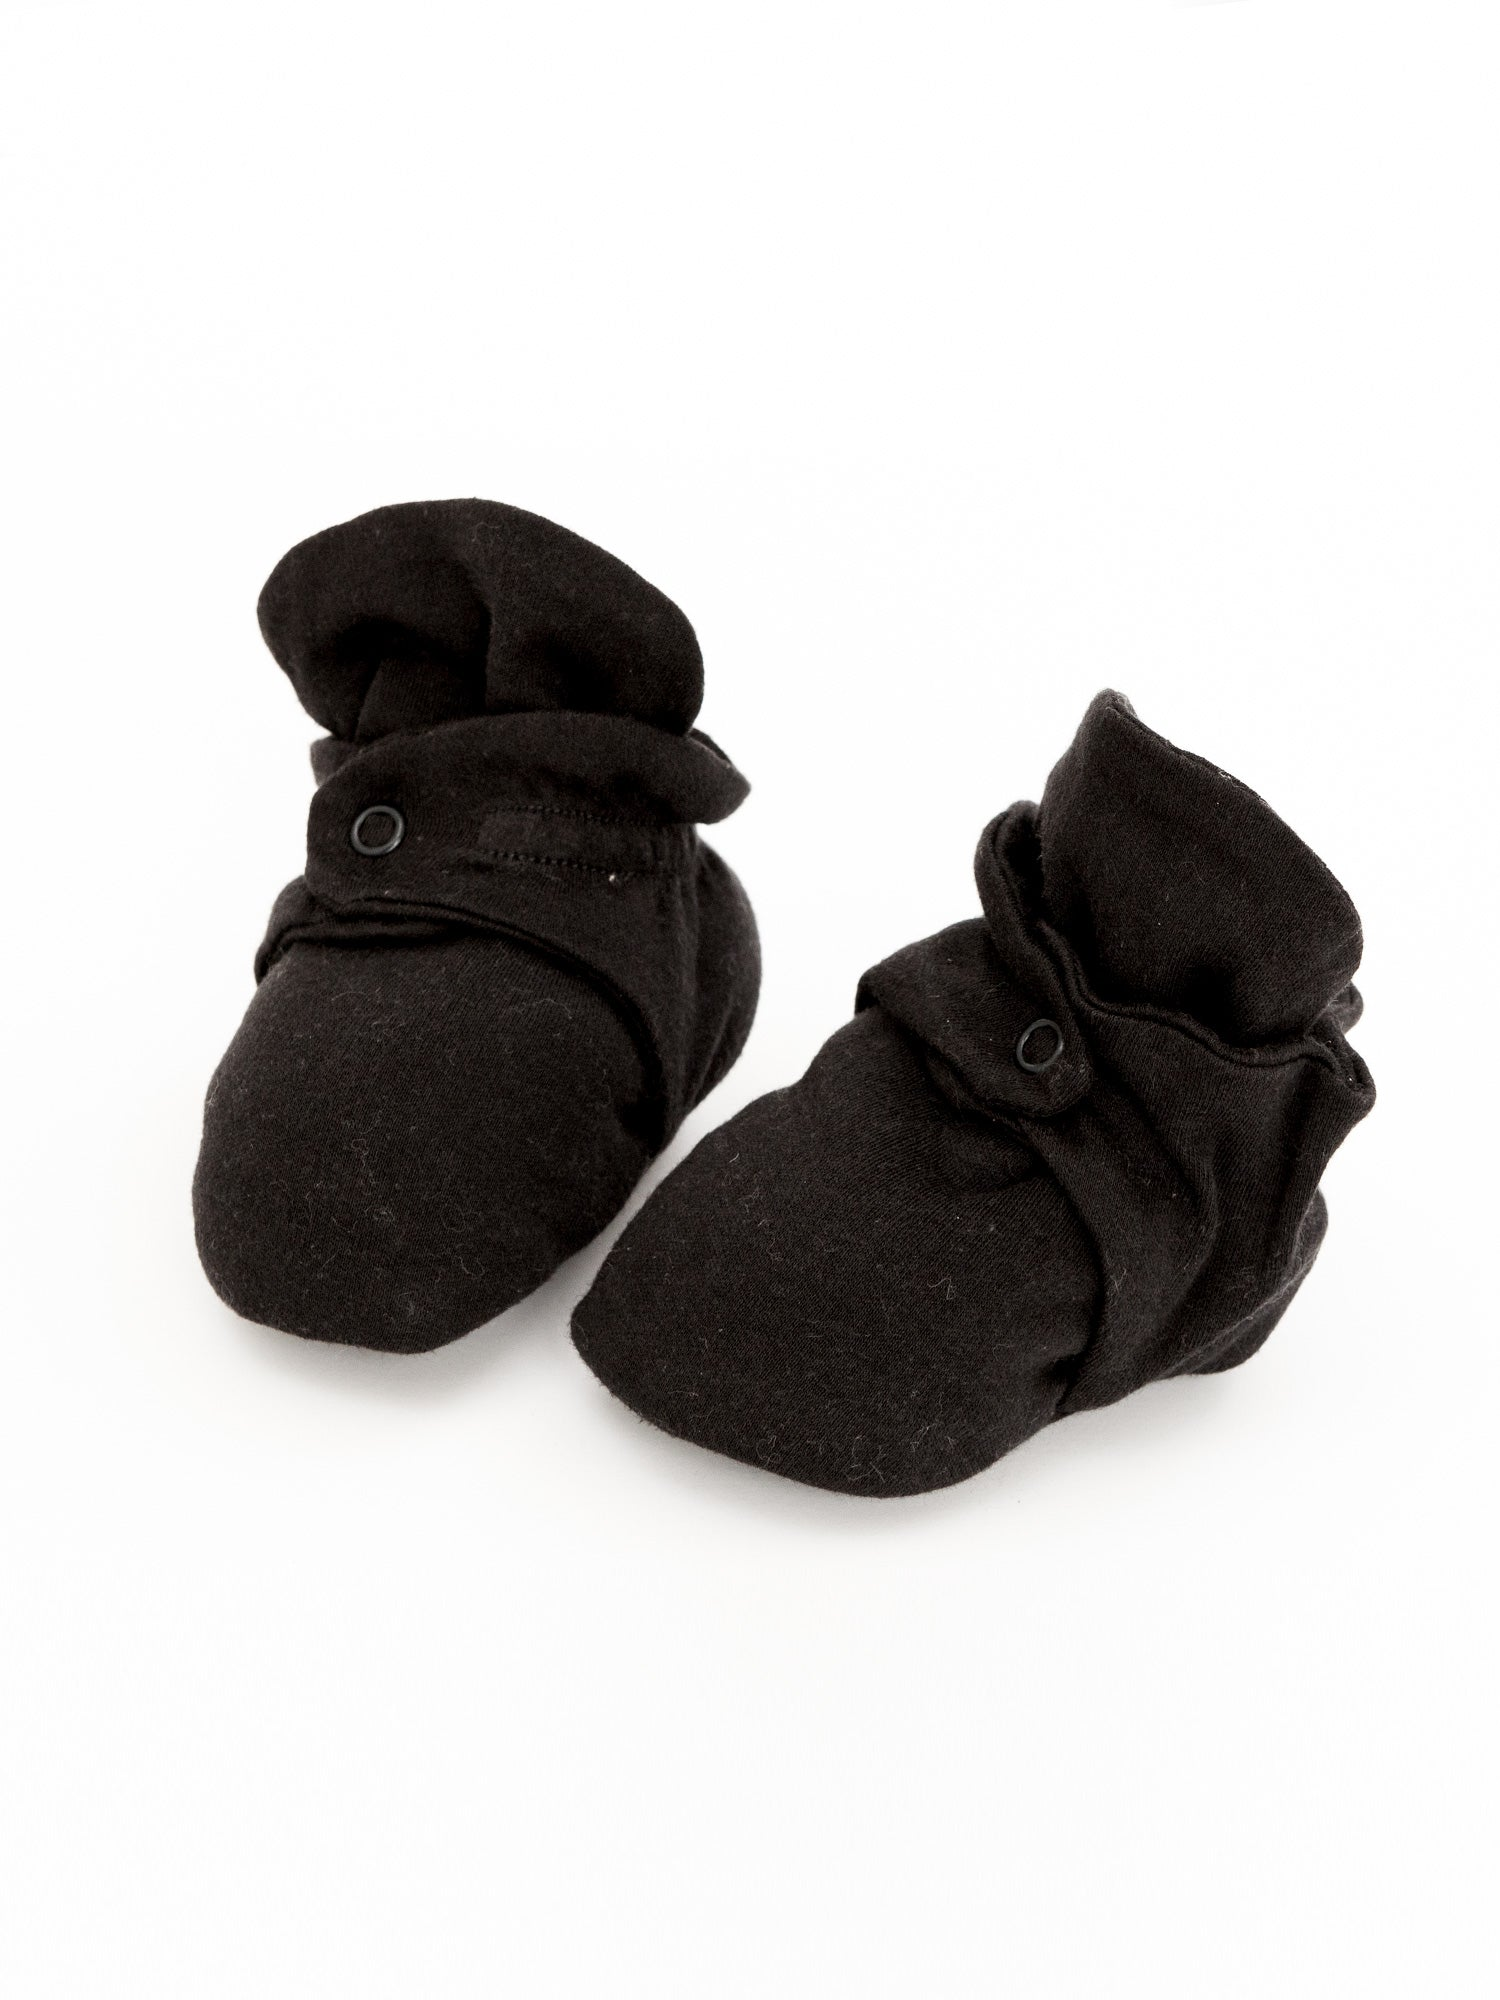 Snap Booties - Black